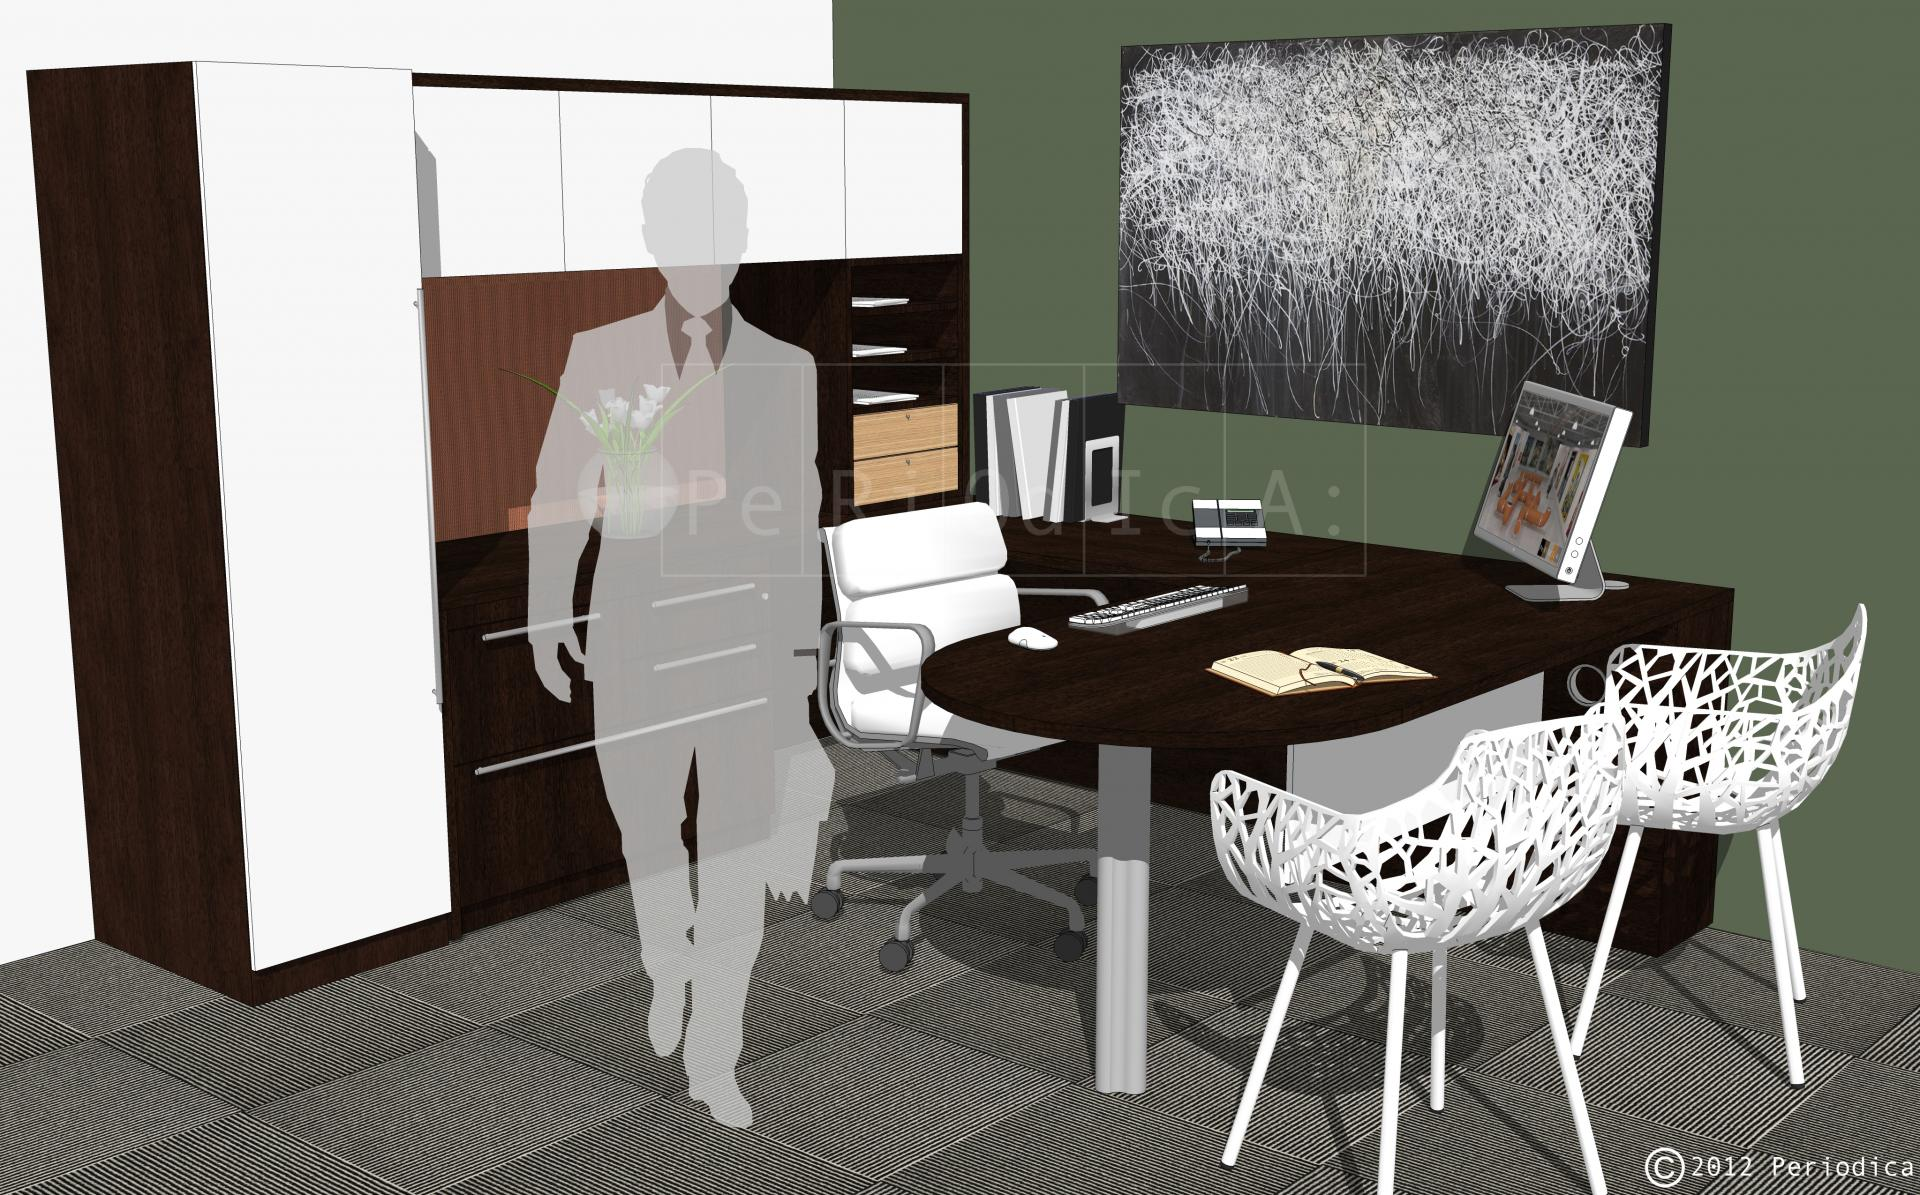 008/ private office (Cherryman). art by jose parla